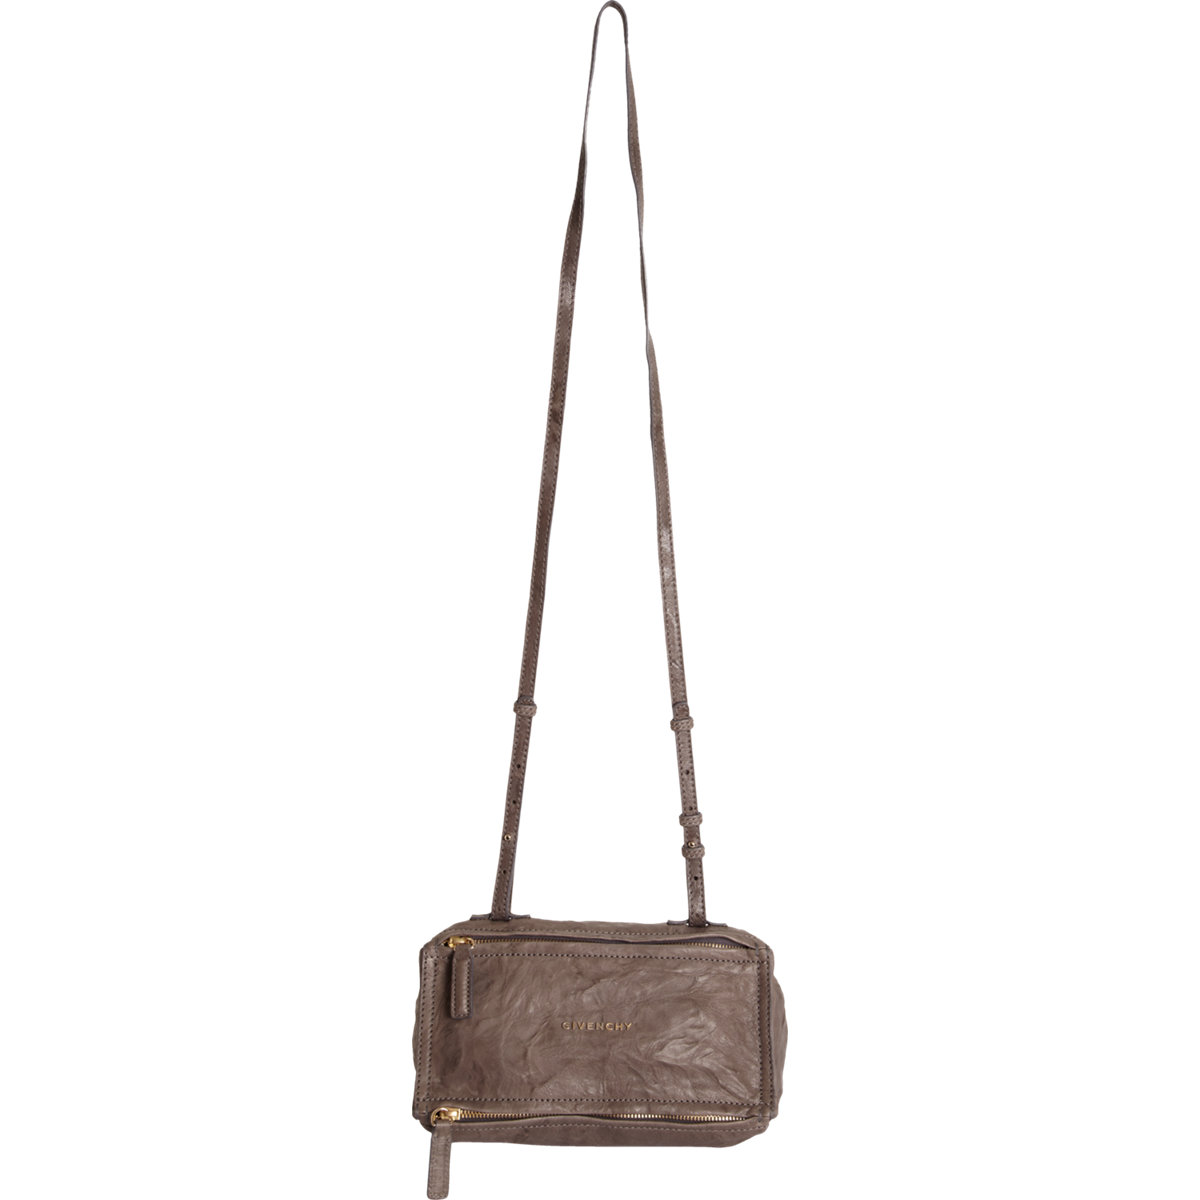 aceac6b2c7634 Givenchy Pandora Metal Animation Messenger Bag in Brown (taupe ...